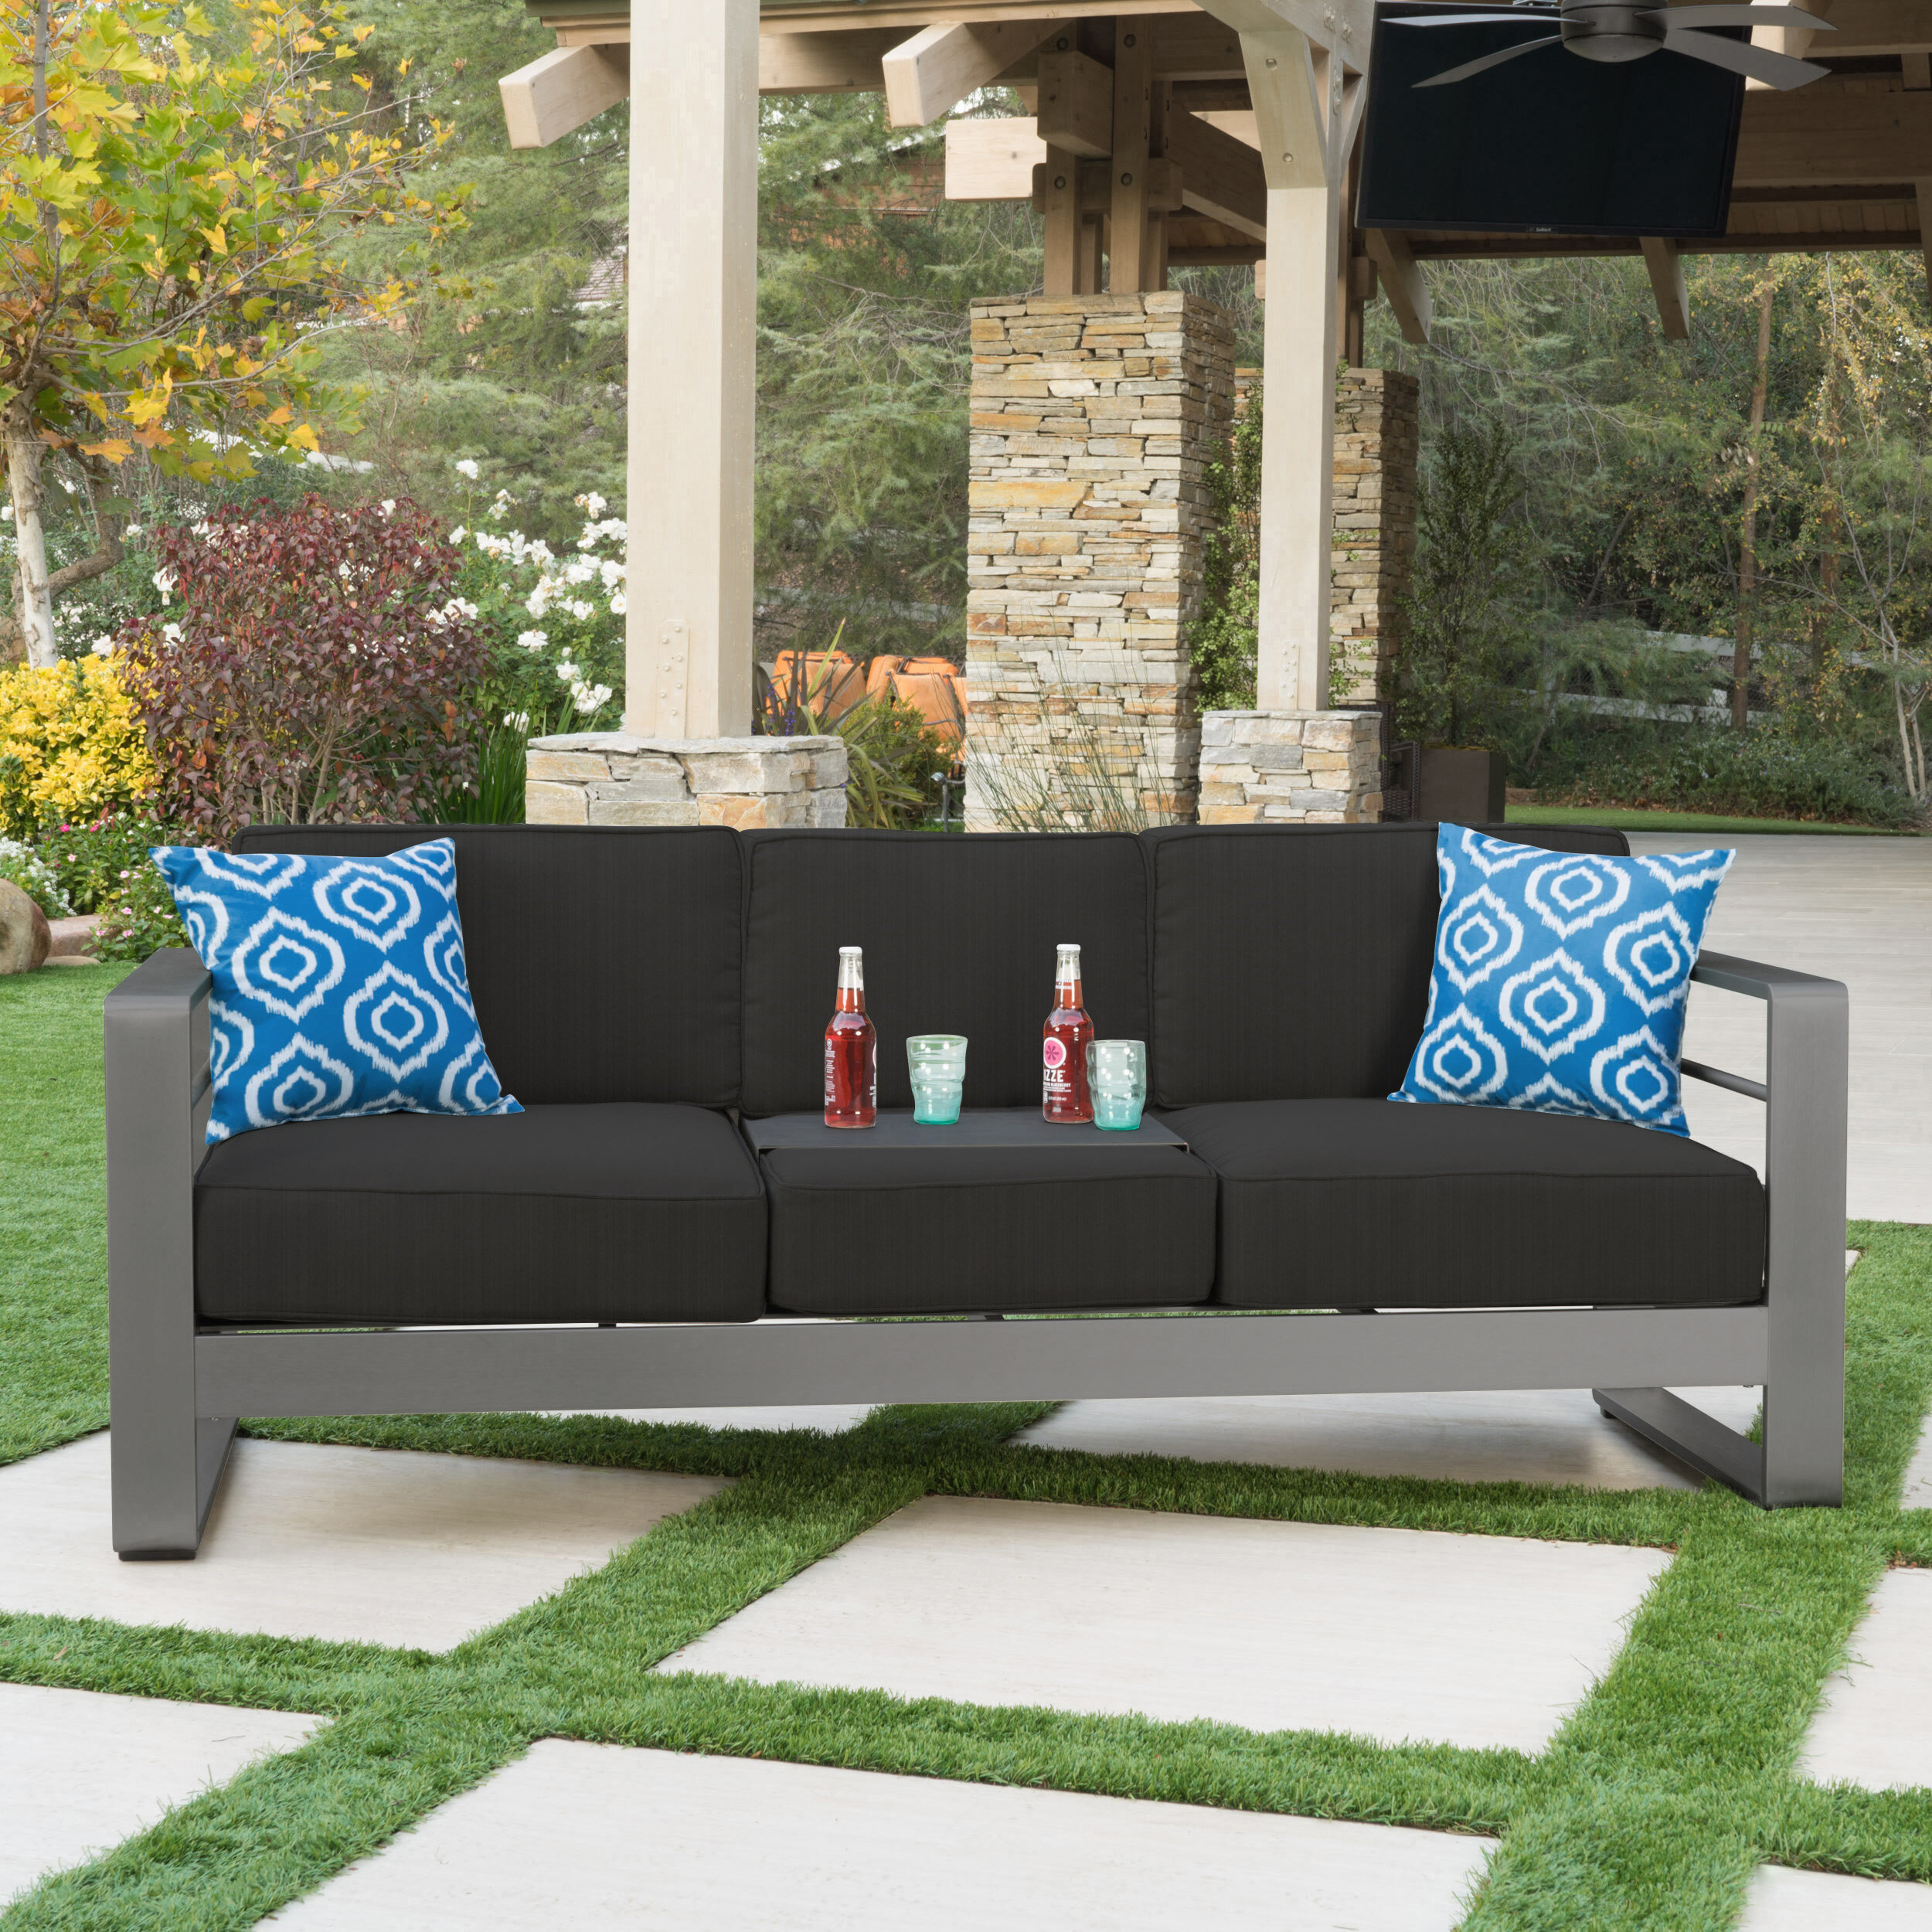 plans floating ideas for outdoor bed antique sale porch